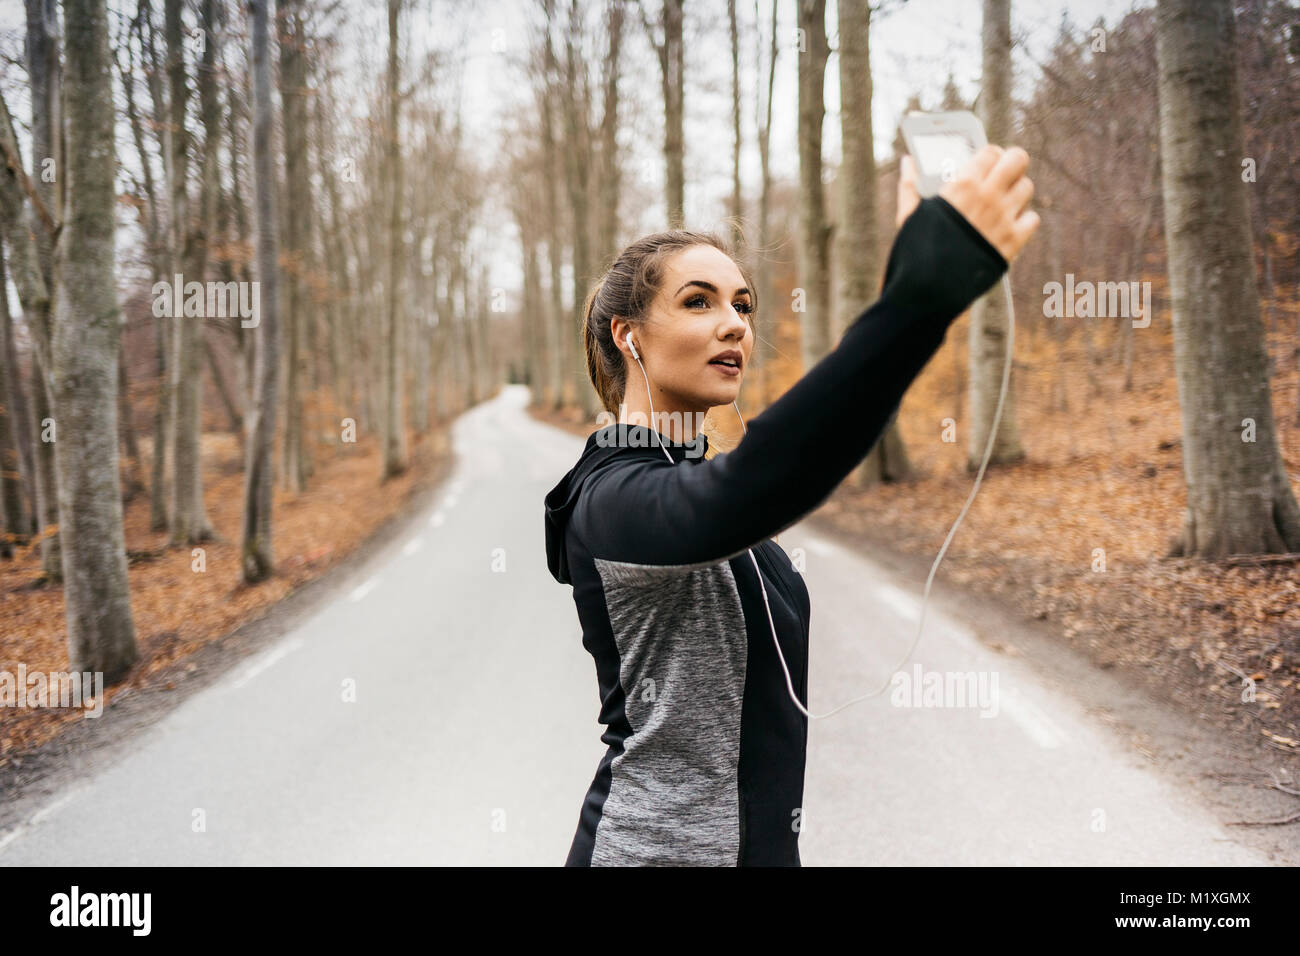 Young woman taking selfie on rural road in Sodermanland, Sweden Stock Photo